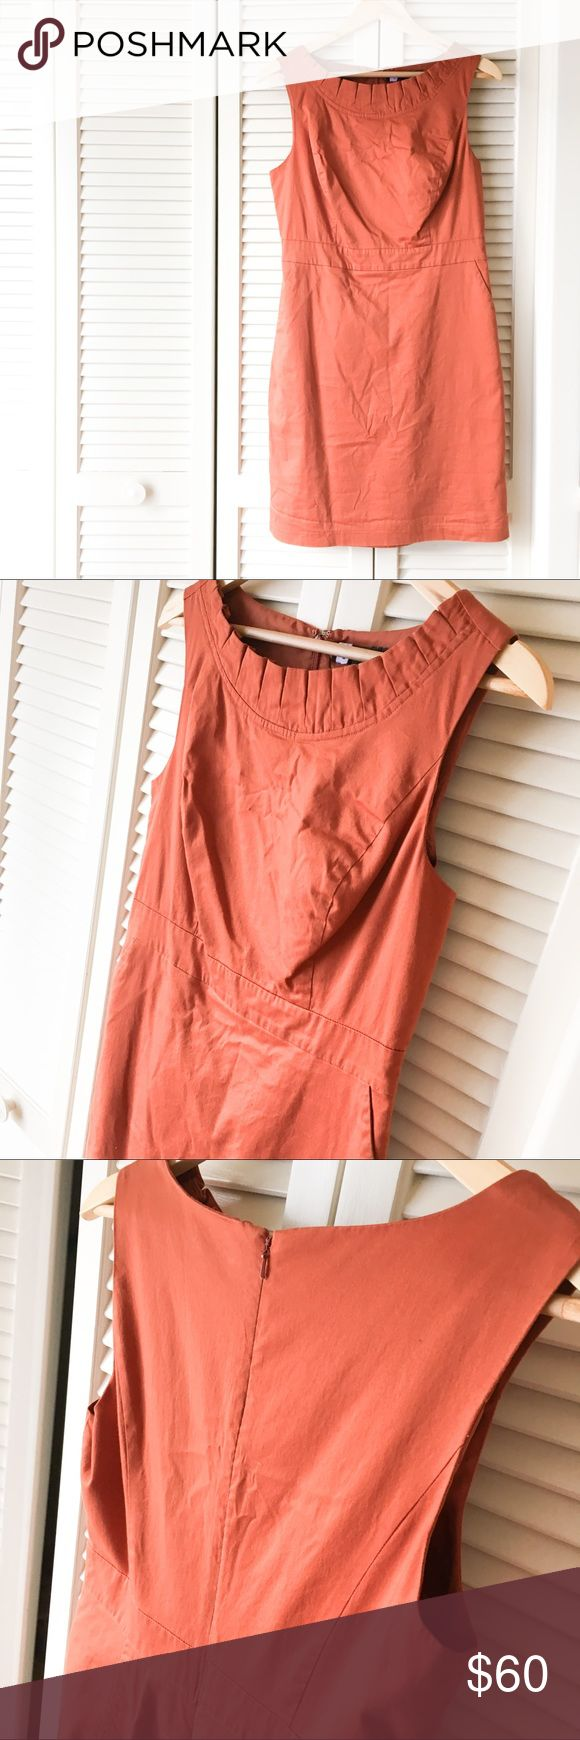 The Limited Burnt Orange Dress Sleeveless Pockets Excellent condition, worn once for a wedding. Flattering neckline detail with pockets! Quality The Limited material with zip back and clasp top. Super cute, very comfortable - Just does not fit anymore. Slightly wrinkled from being dry cleaned and stored for so long. The Limited Dresses Midi